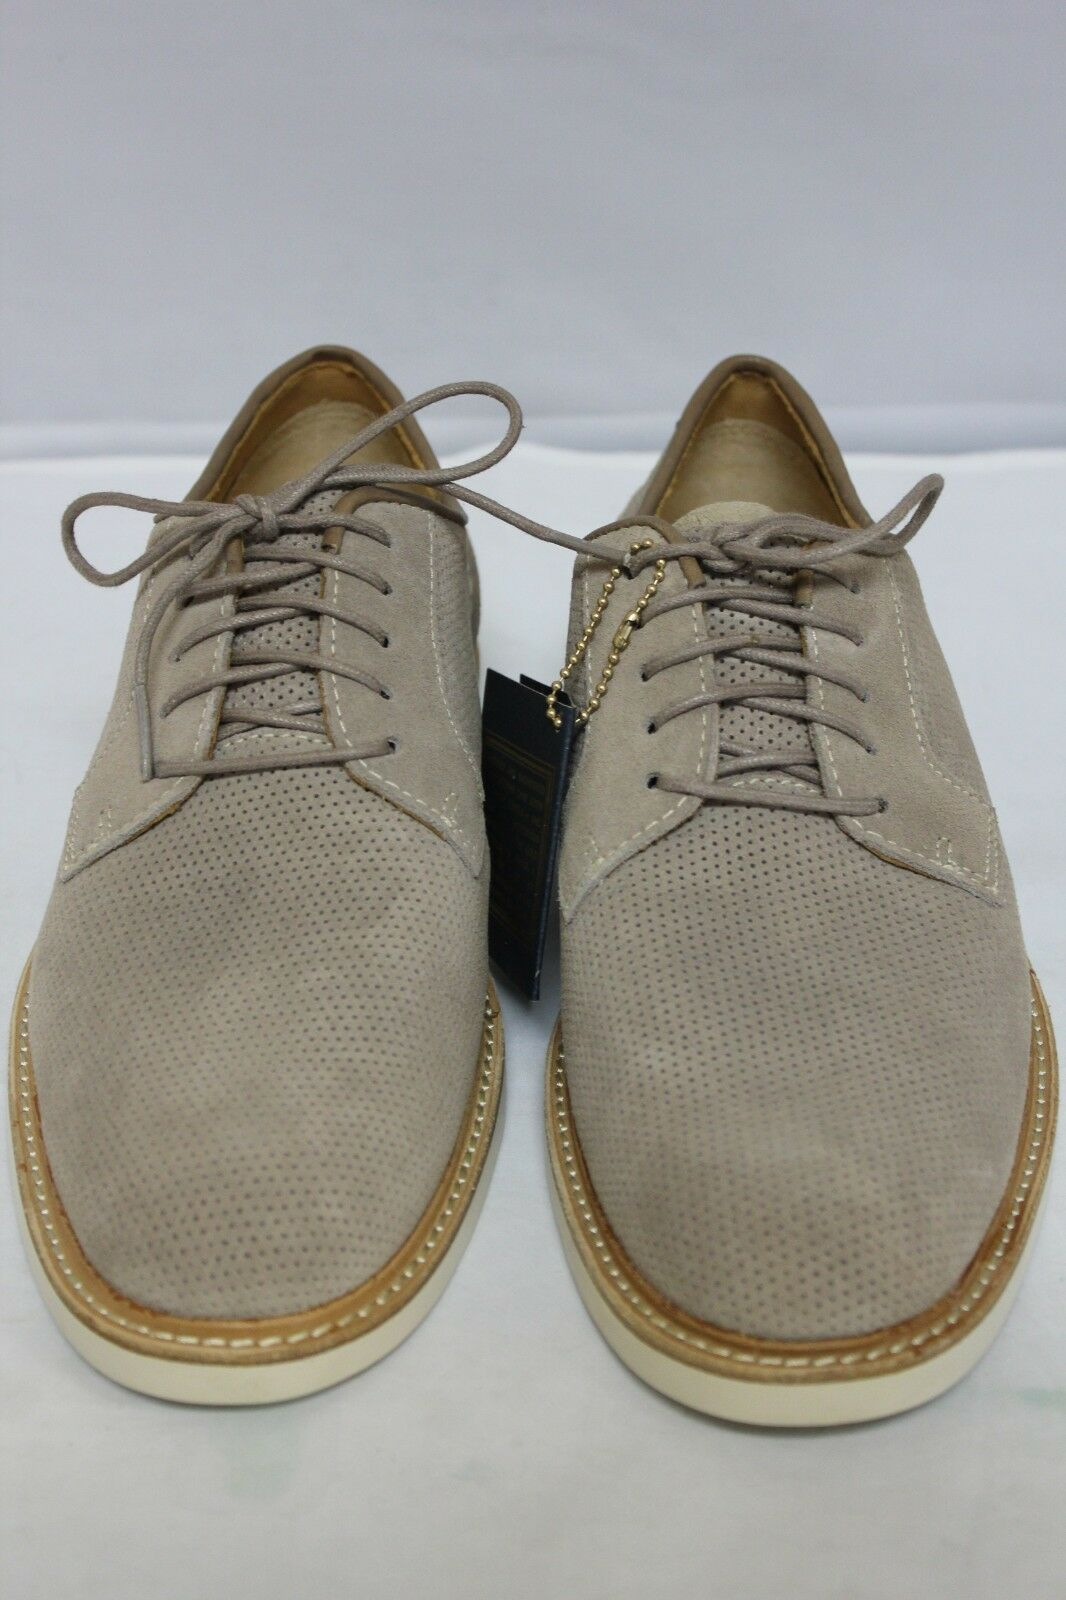 Sperry Top-Sider gold Cup Collection Men's shoes Size 7M